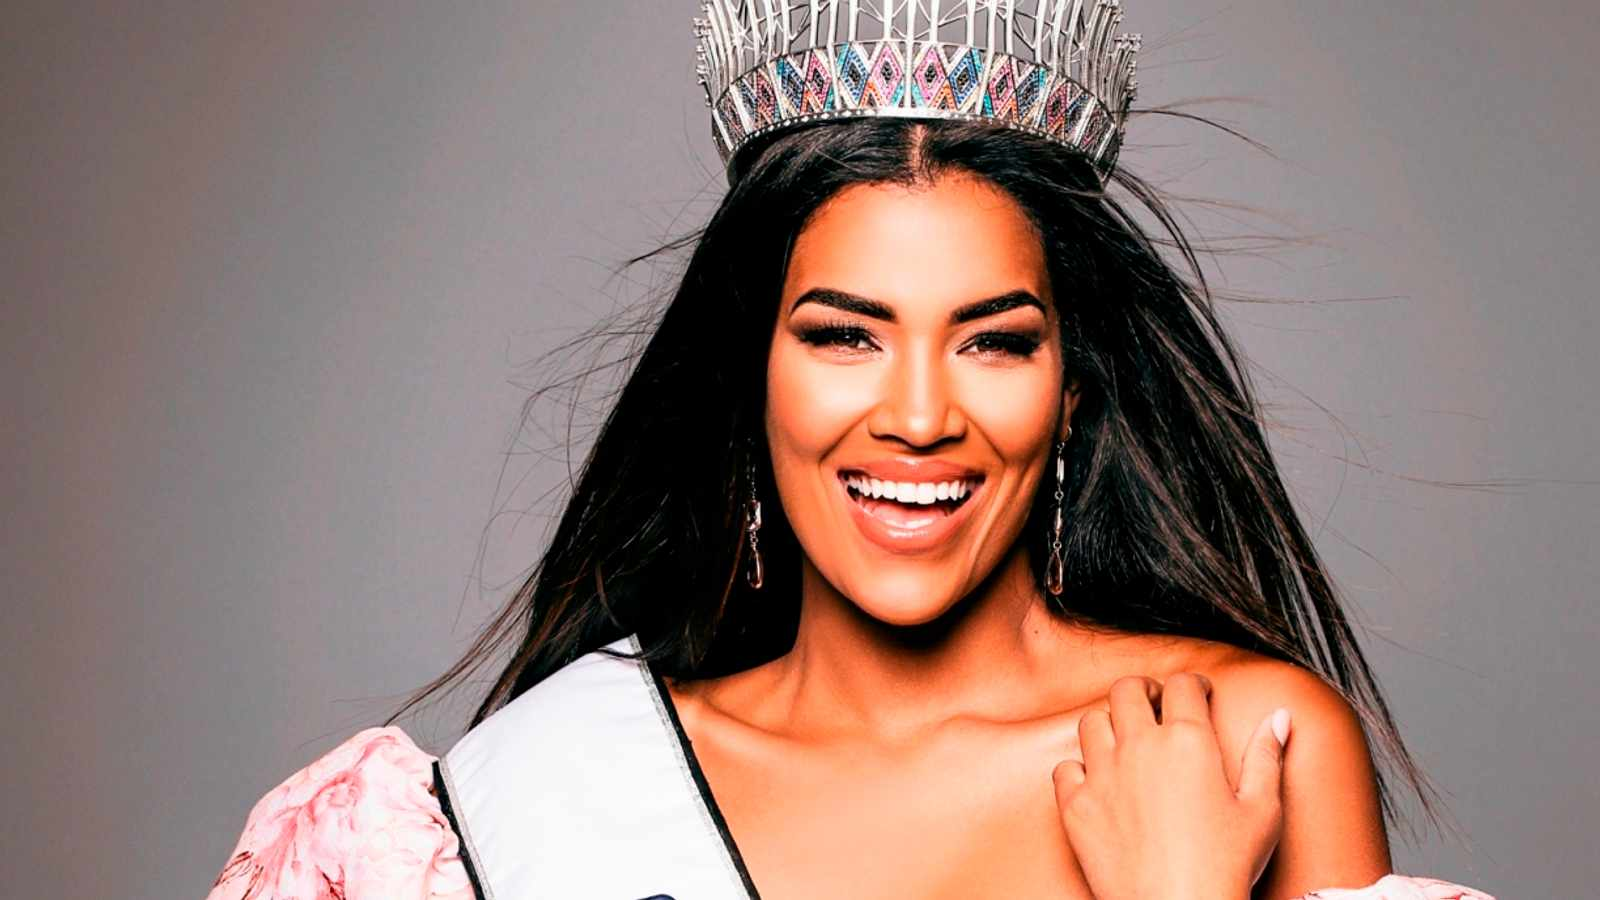 WATCH: Miss South Africa 2020 Top 35